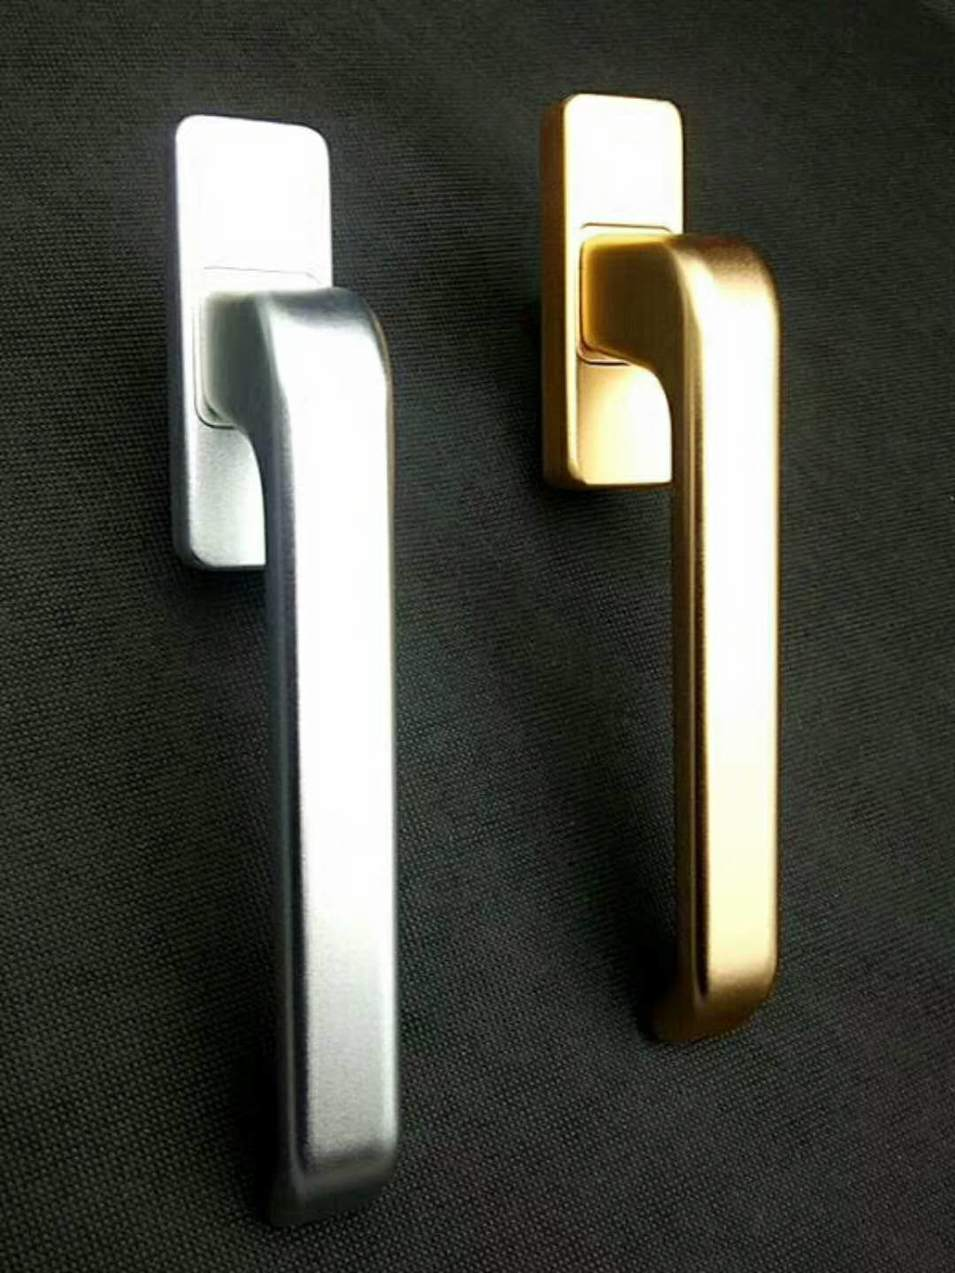 Door handle copper continuous casting